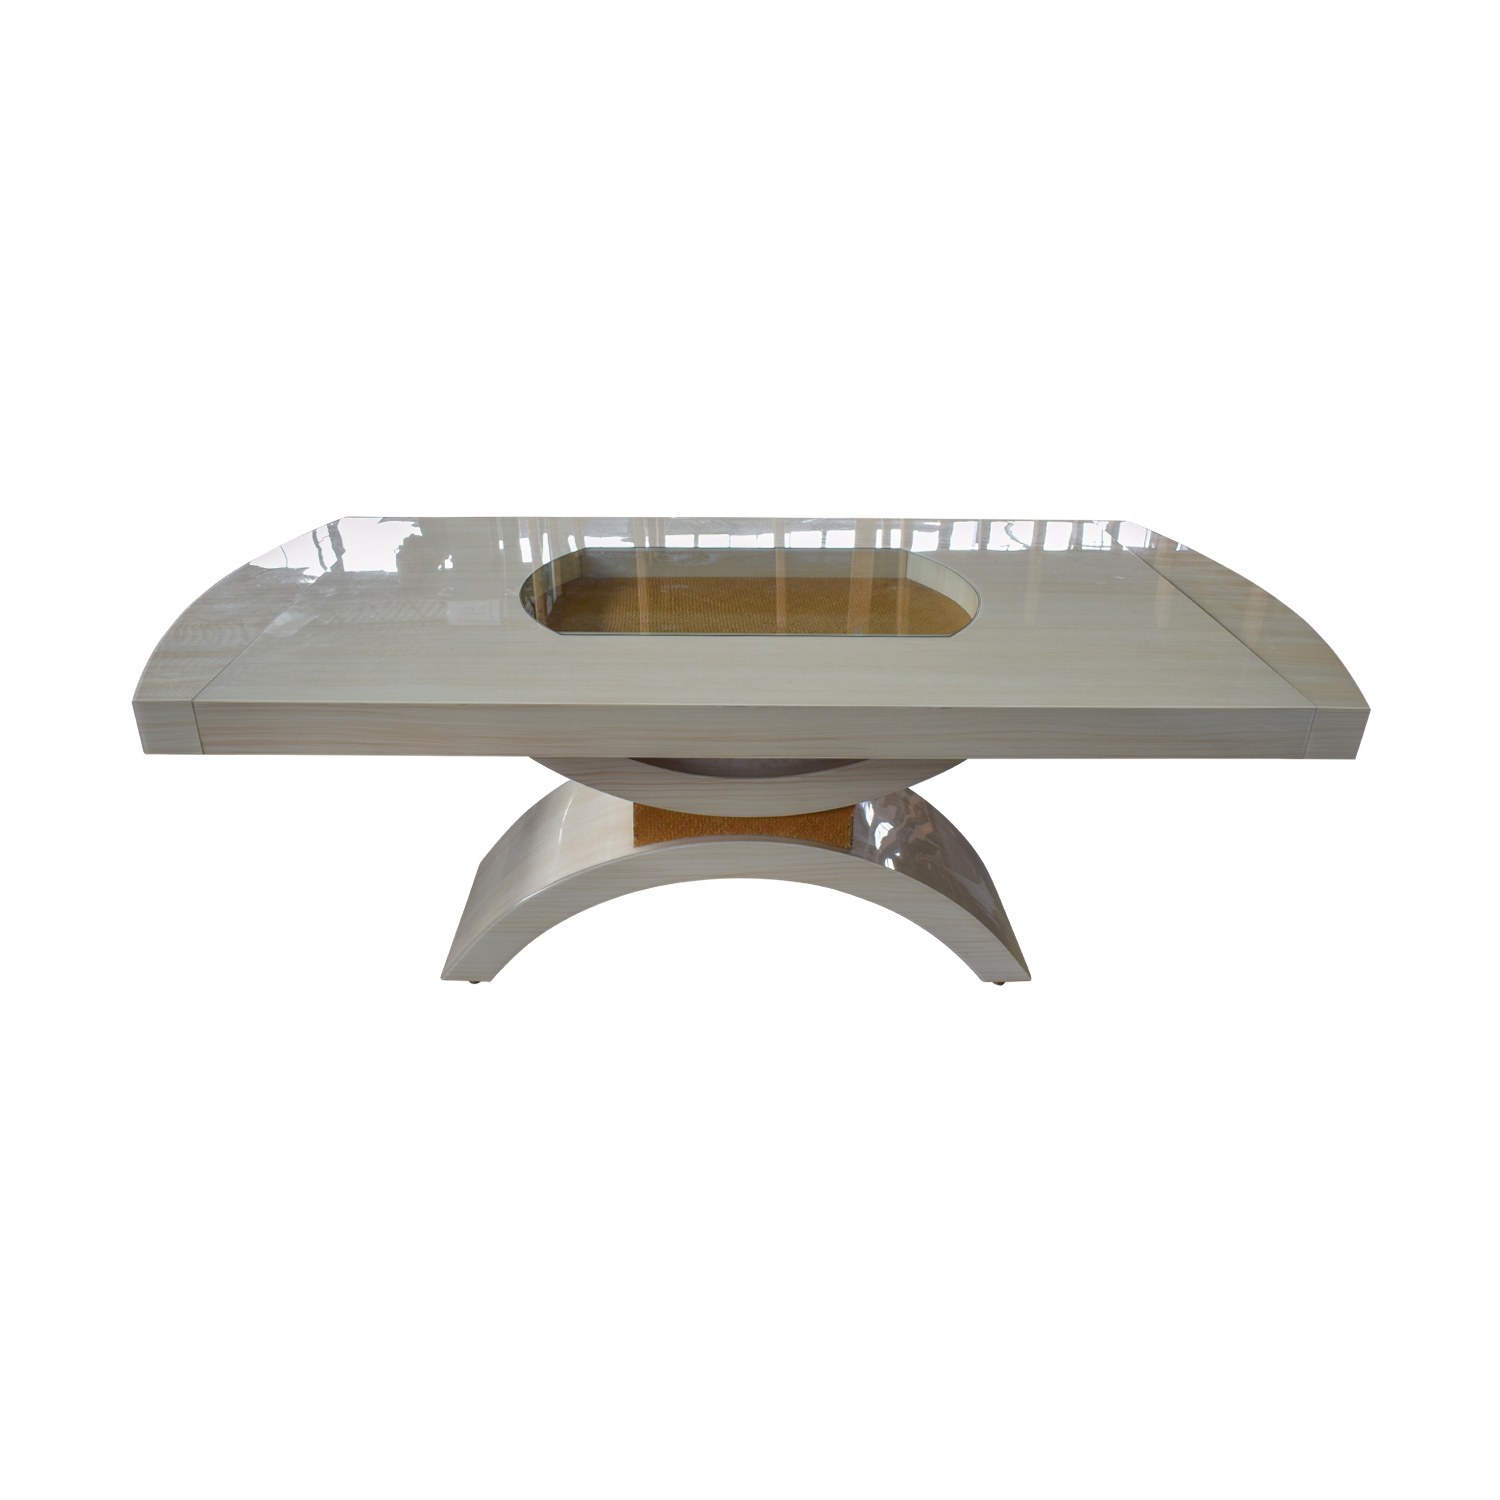 Glassworks Glassworks Beige with Glass Center Dining Table and Arched Pedestal dimensions